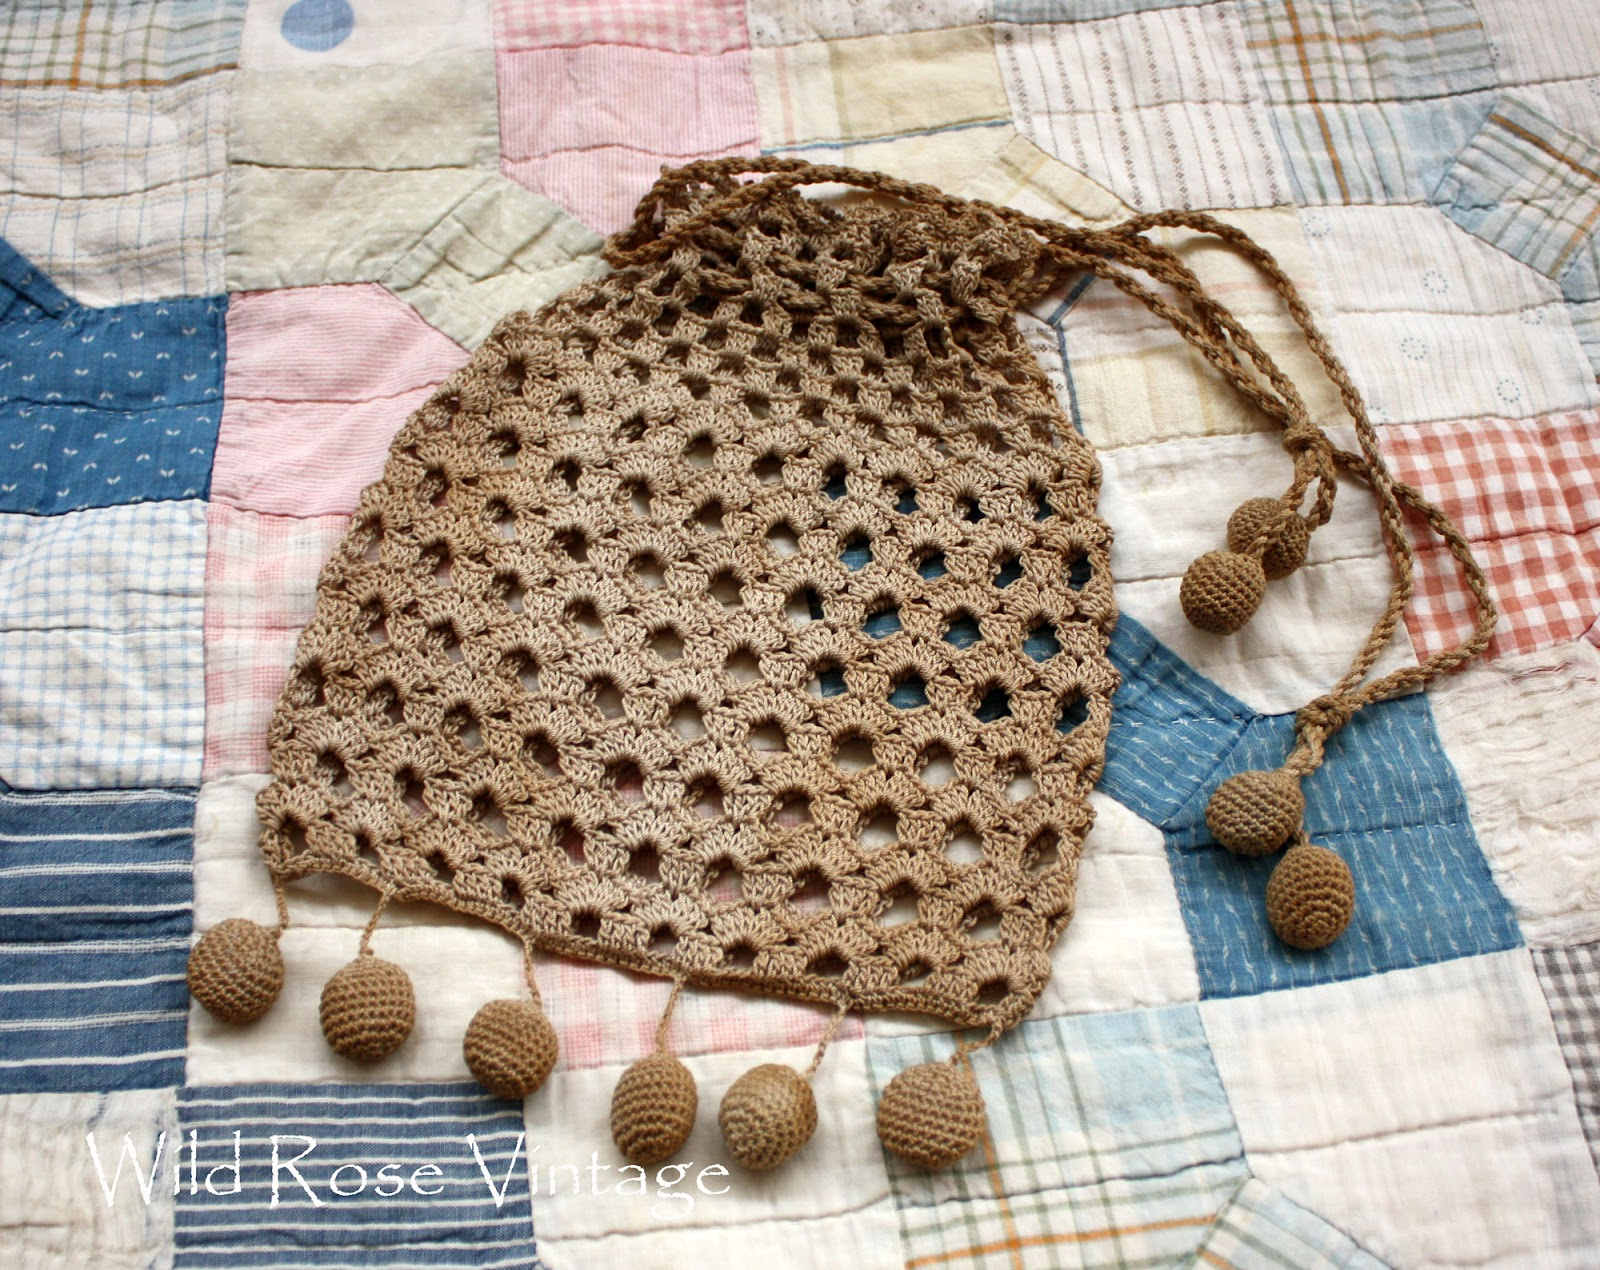 Wild Rose Vintage: Vintage Crochet Bag